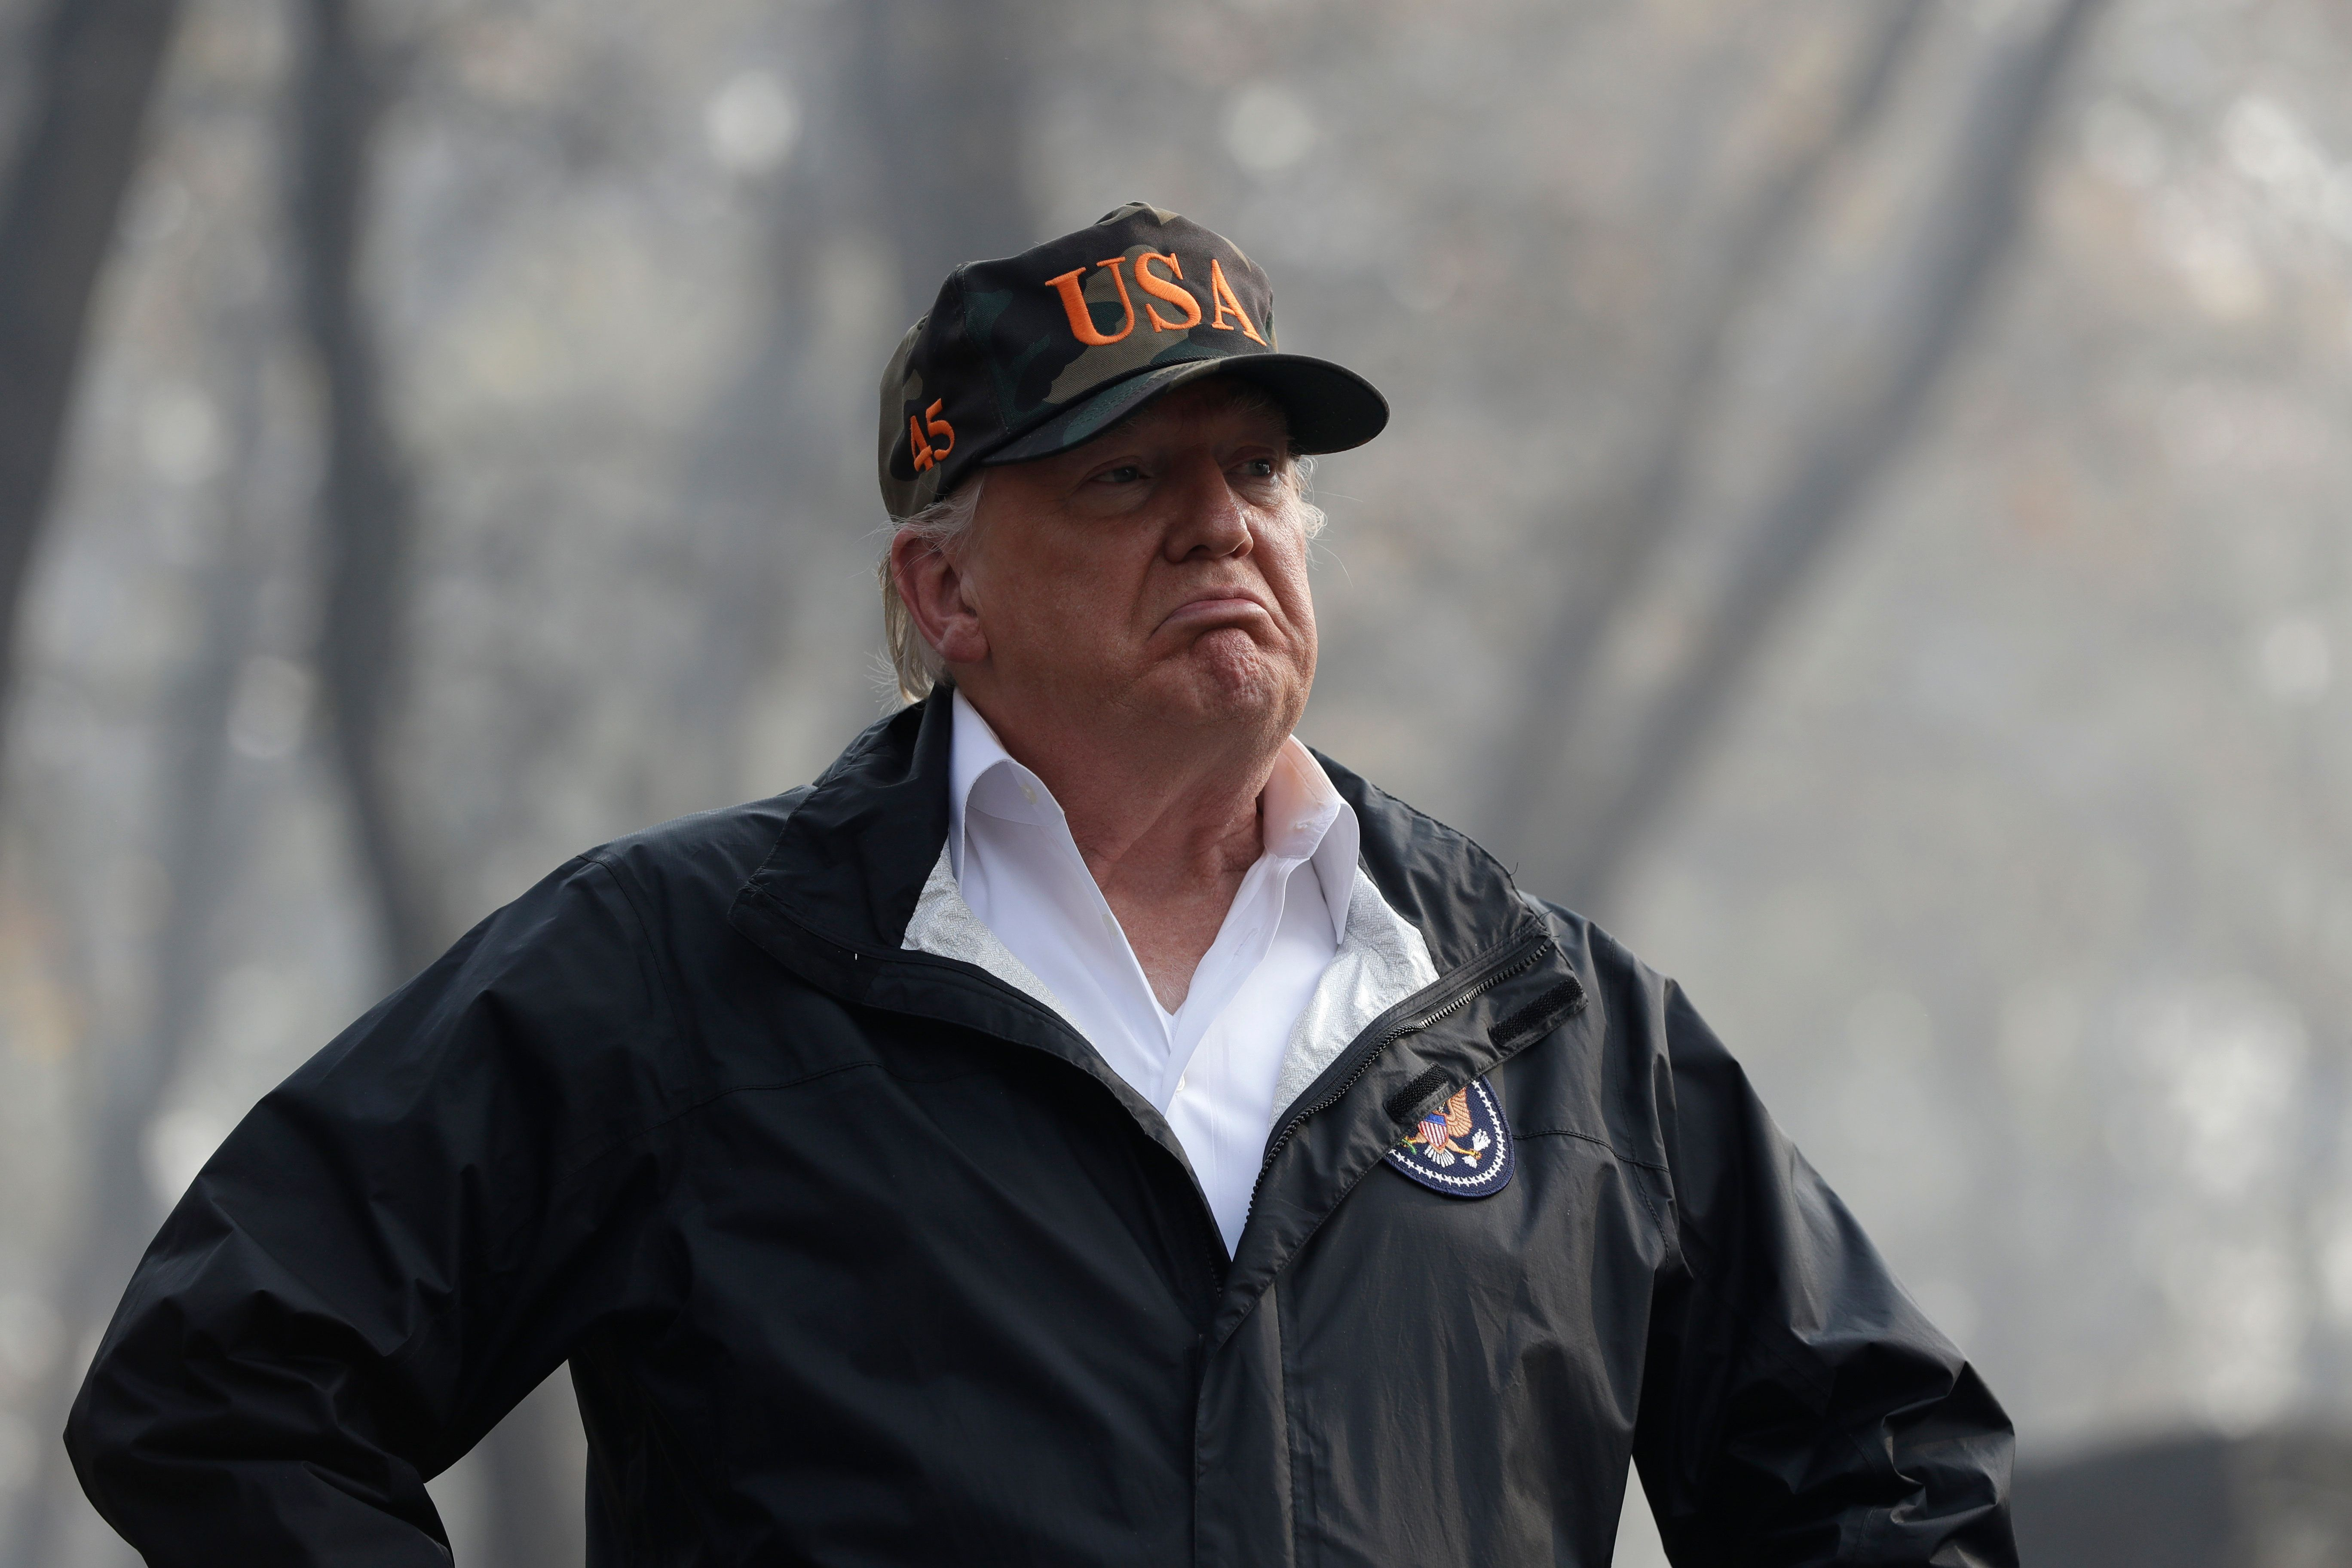 FILE - In this Nov. 17, 2018 file photo U.S. President Donald Trump visits a neighborhood impacted by the wildfires in Paradise, Calif. Forest fires from California to Greece, droughts in Germany and Australia, tropical cyclones Mangkhut in the Pacific and Michael in the Atlantic: scientists say this year's extreme weather offers a glimpse of disasters to come if global warming continues unabated. (AP Photo/Evan Vucci, file)